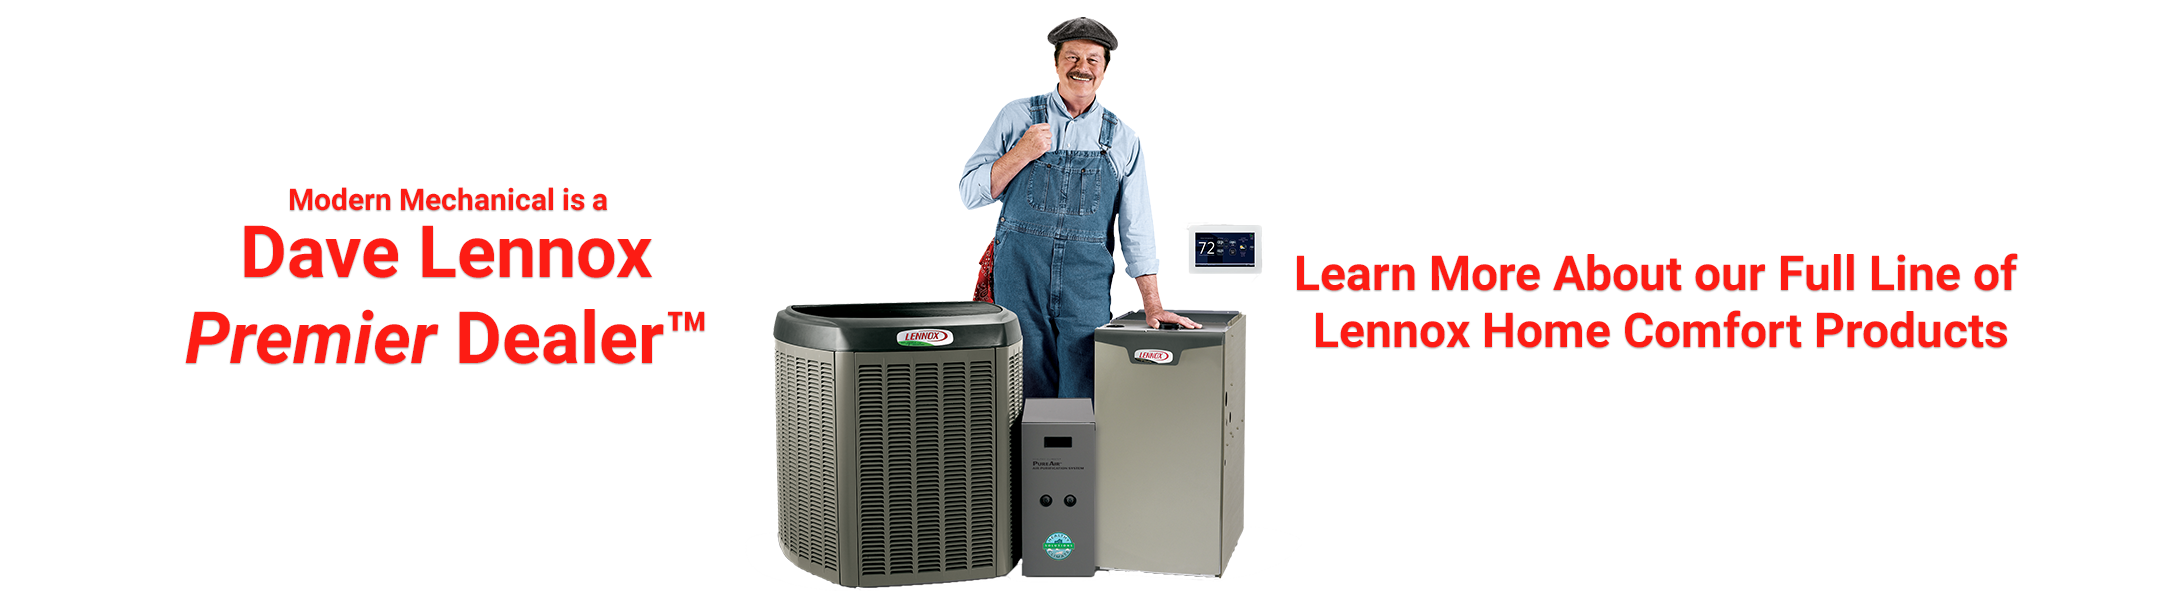 Learn More About Modern Mechanical's Selection of Lennox Products!